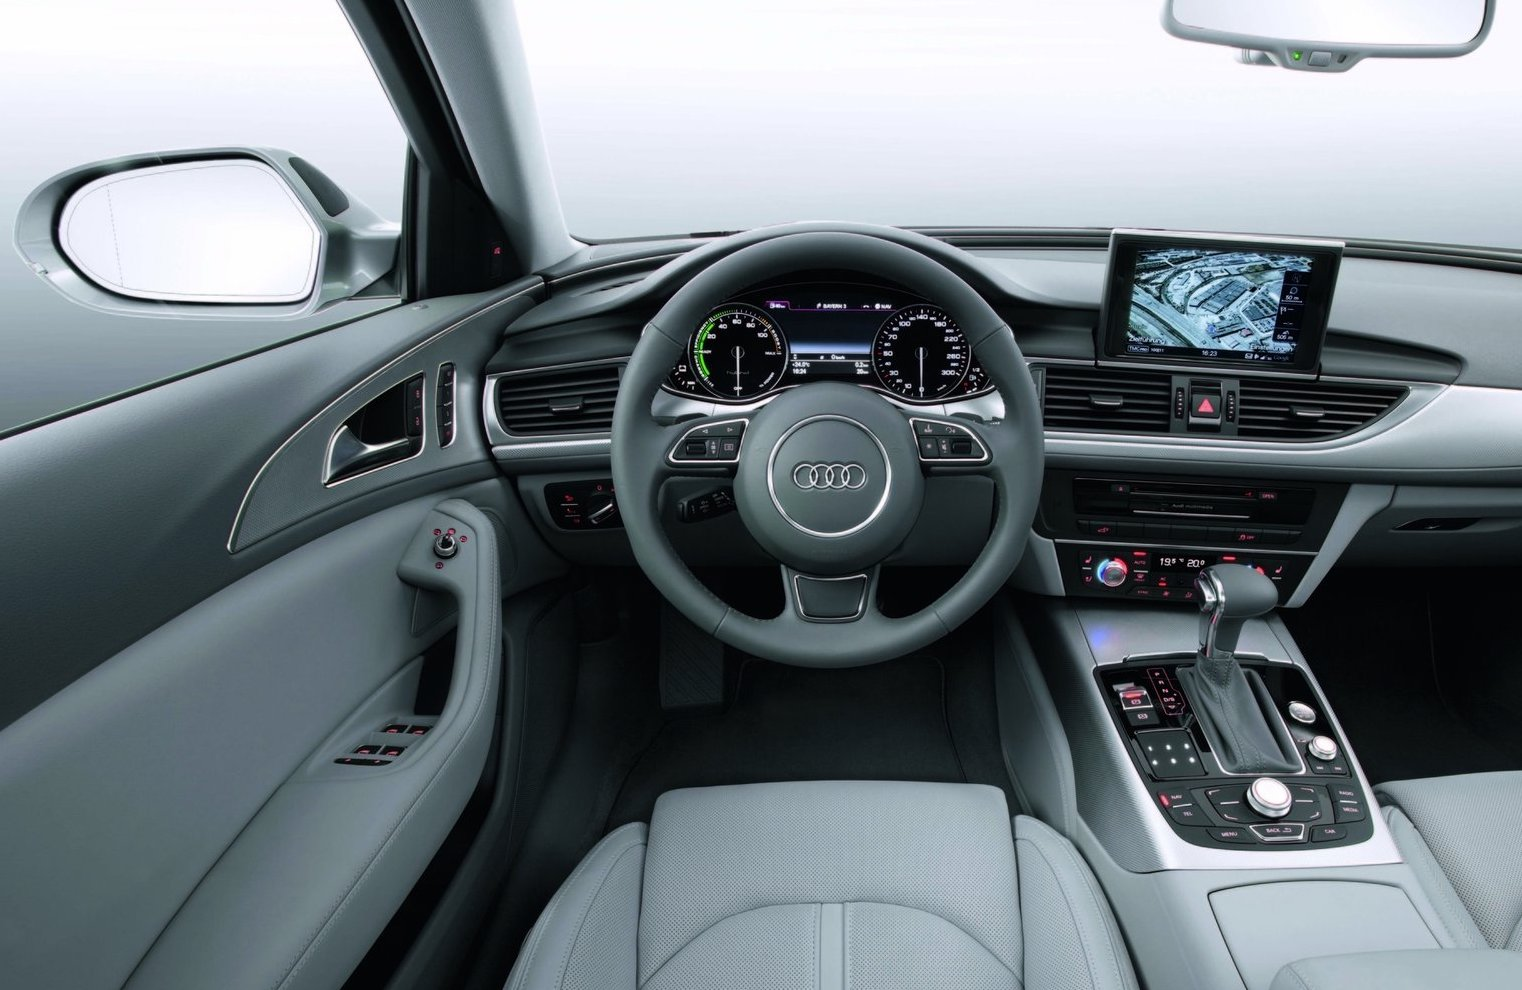 Audi A6 Hybrid replacement battery costs shared | Free